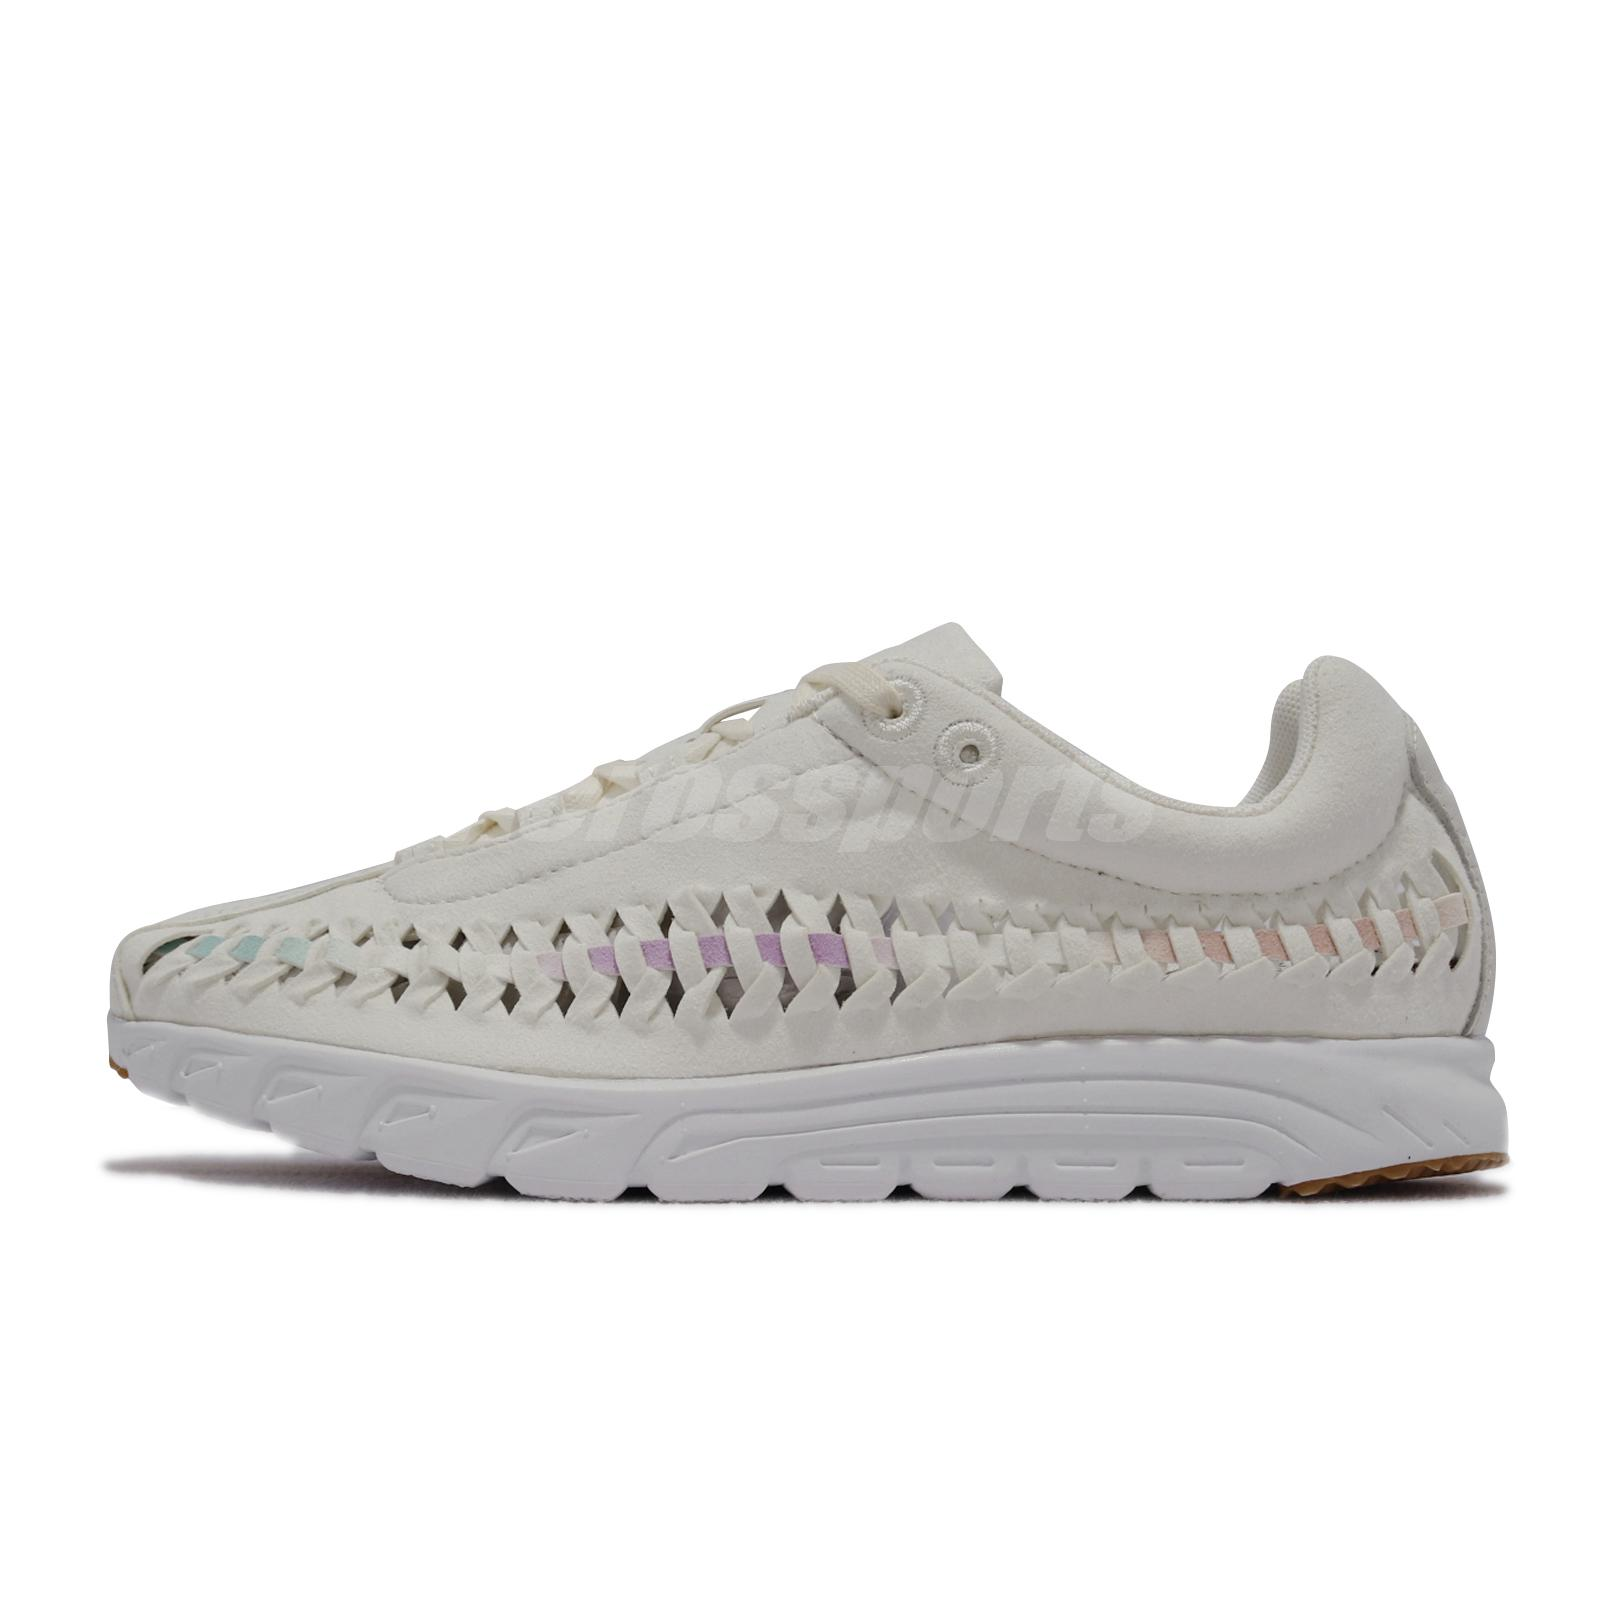 Wmns Nike Mayfly Woven Sail Stardust Women Casual Shoes Sneakers 833802-101 a45a61e91